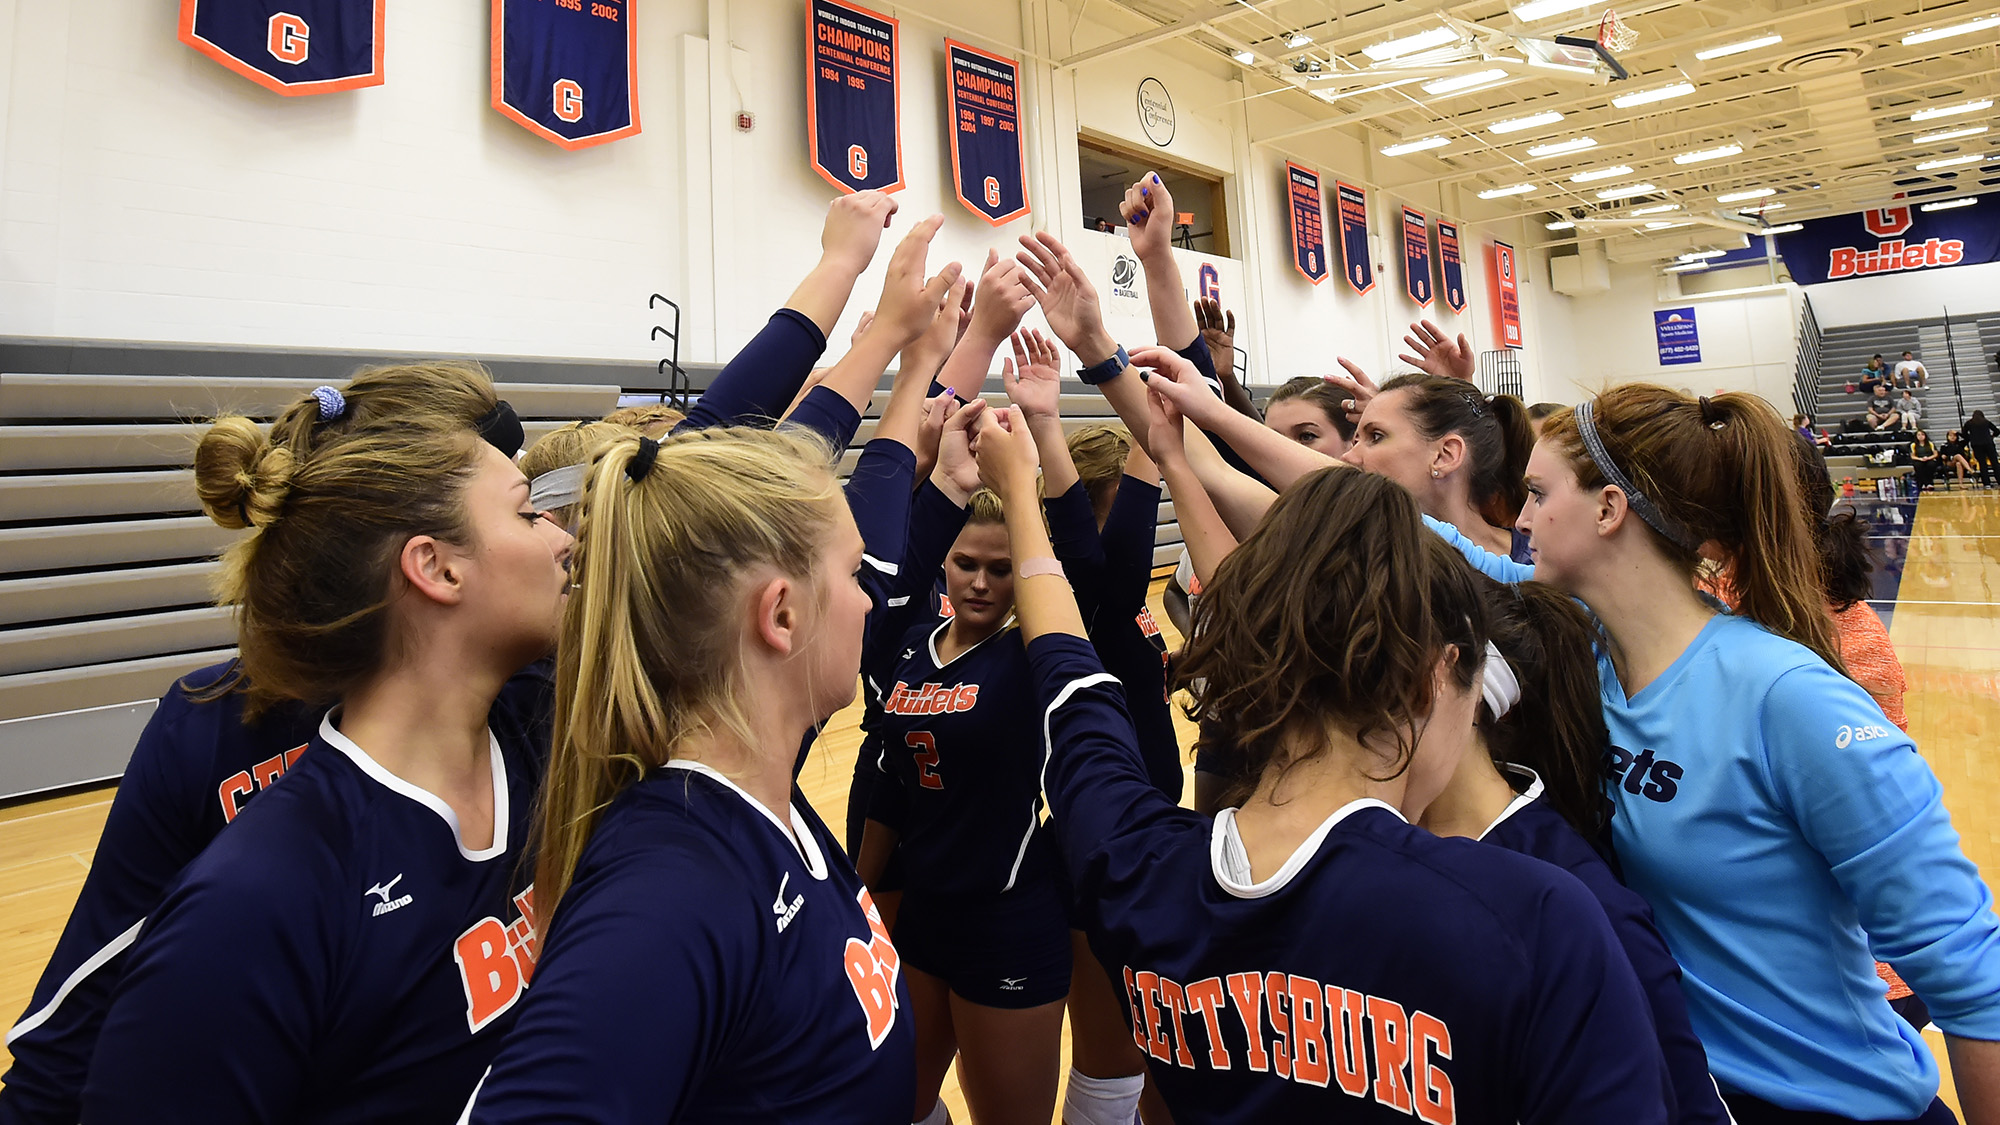 Members of the 2017 Women's Volleyball team huddle in Bream Gym (Photo courtesy of Gettysburg College Athletics)